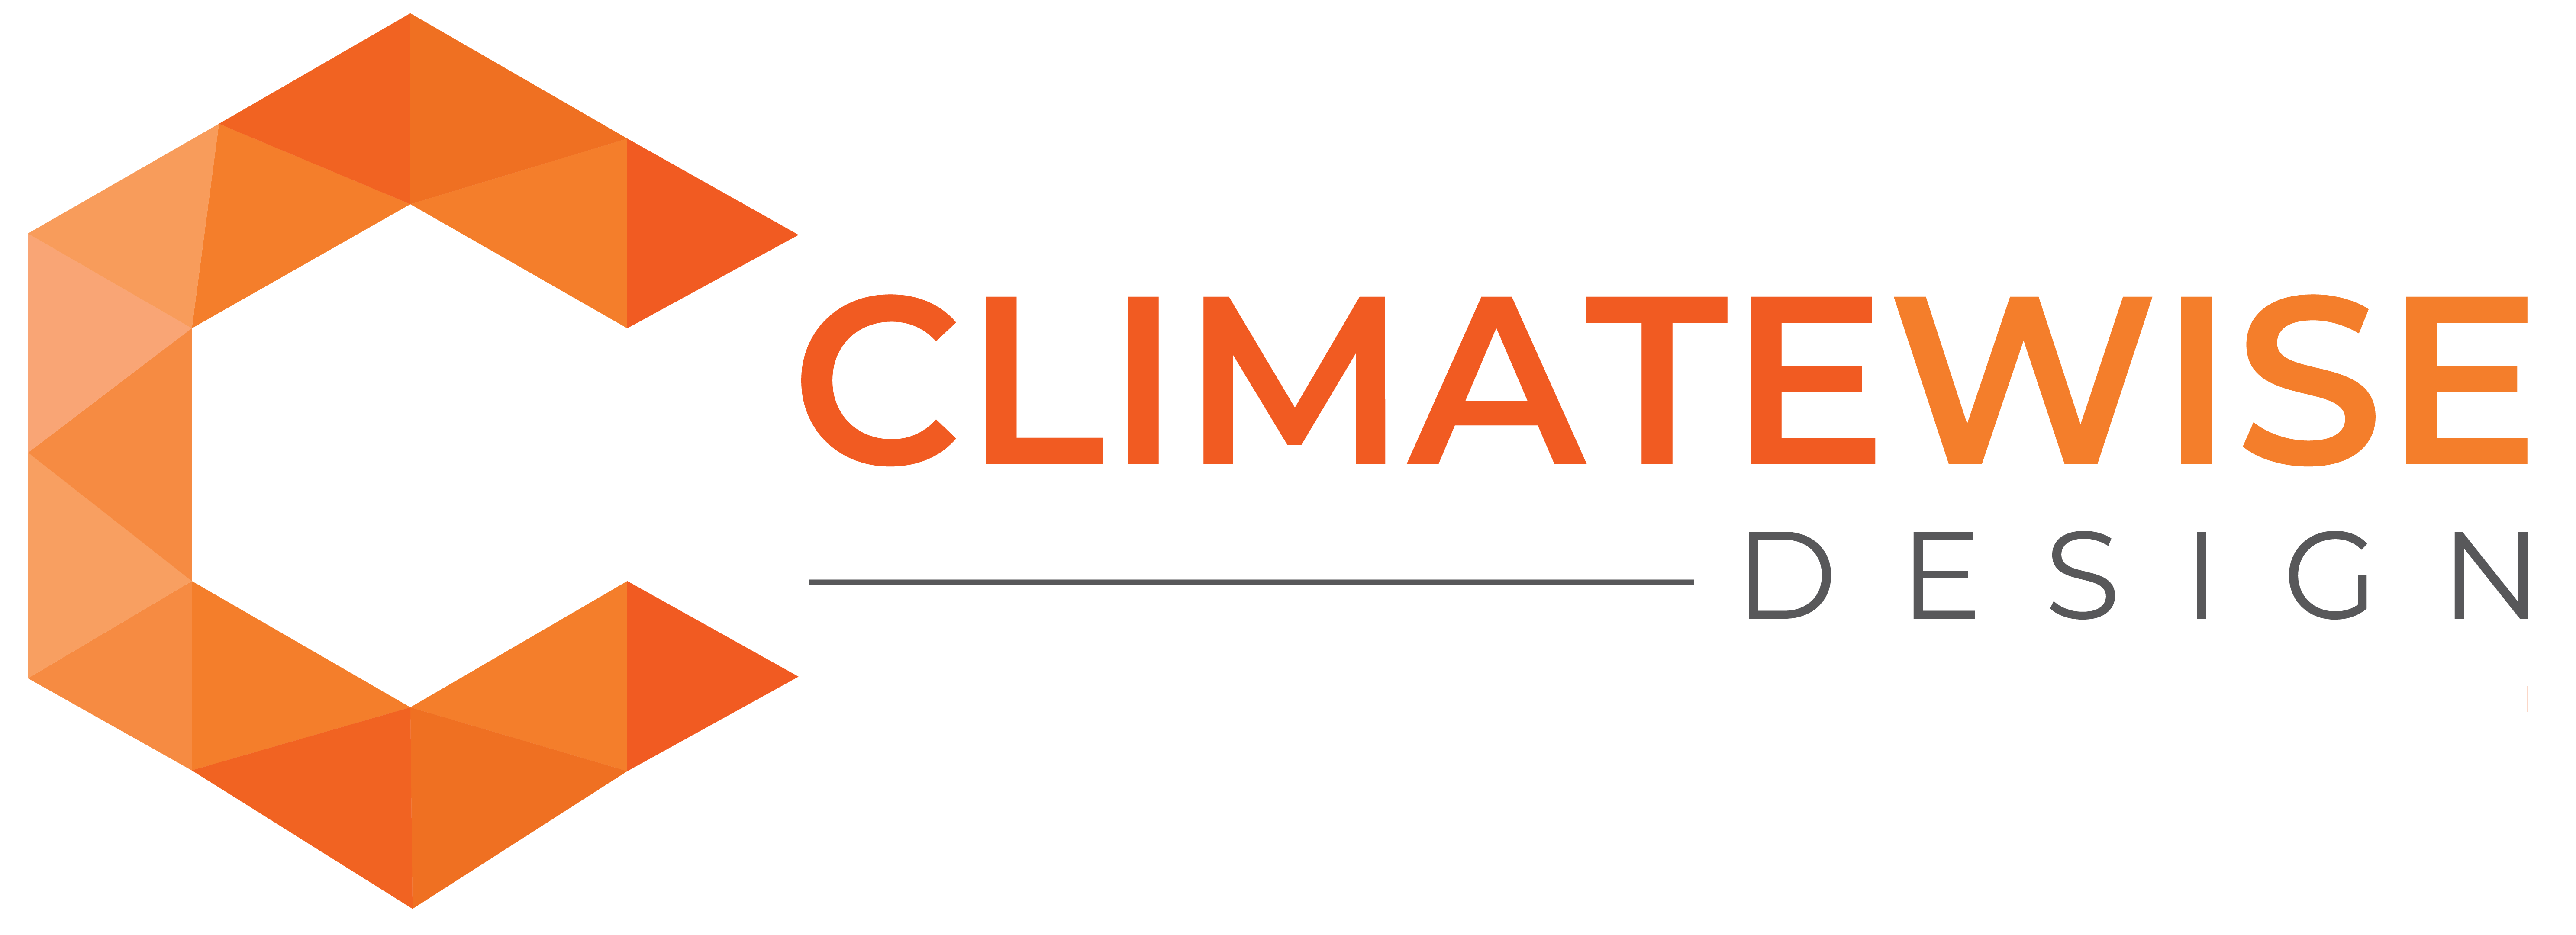 Climate Wise Design